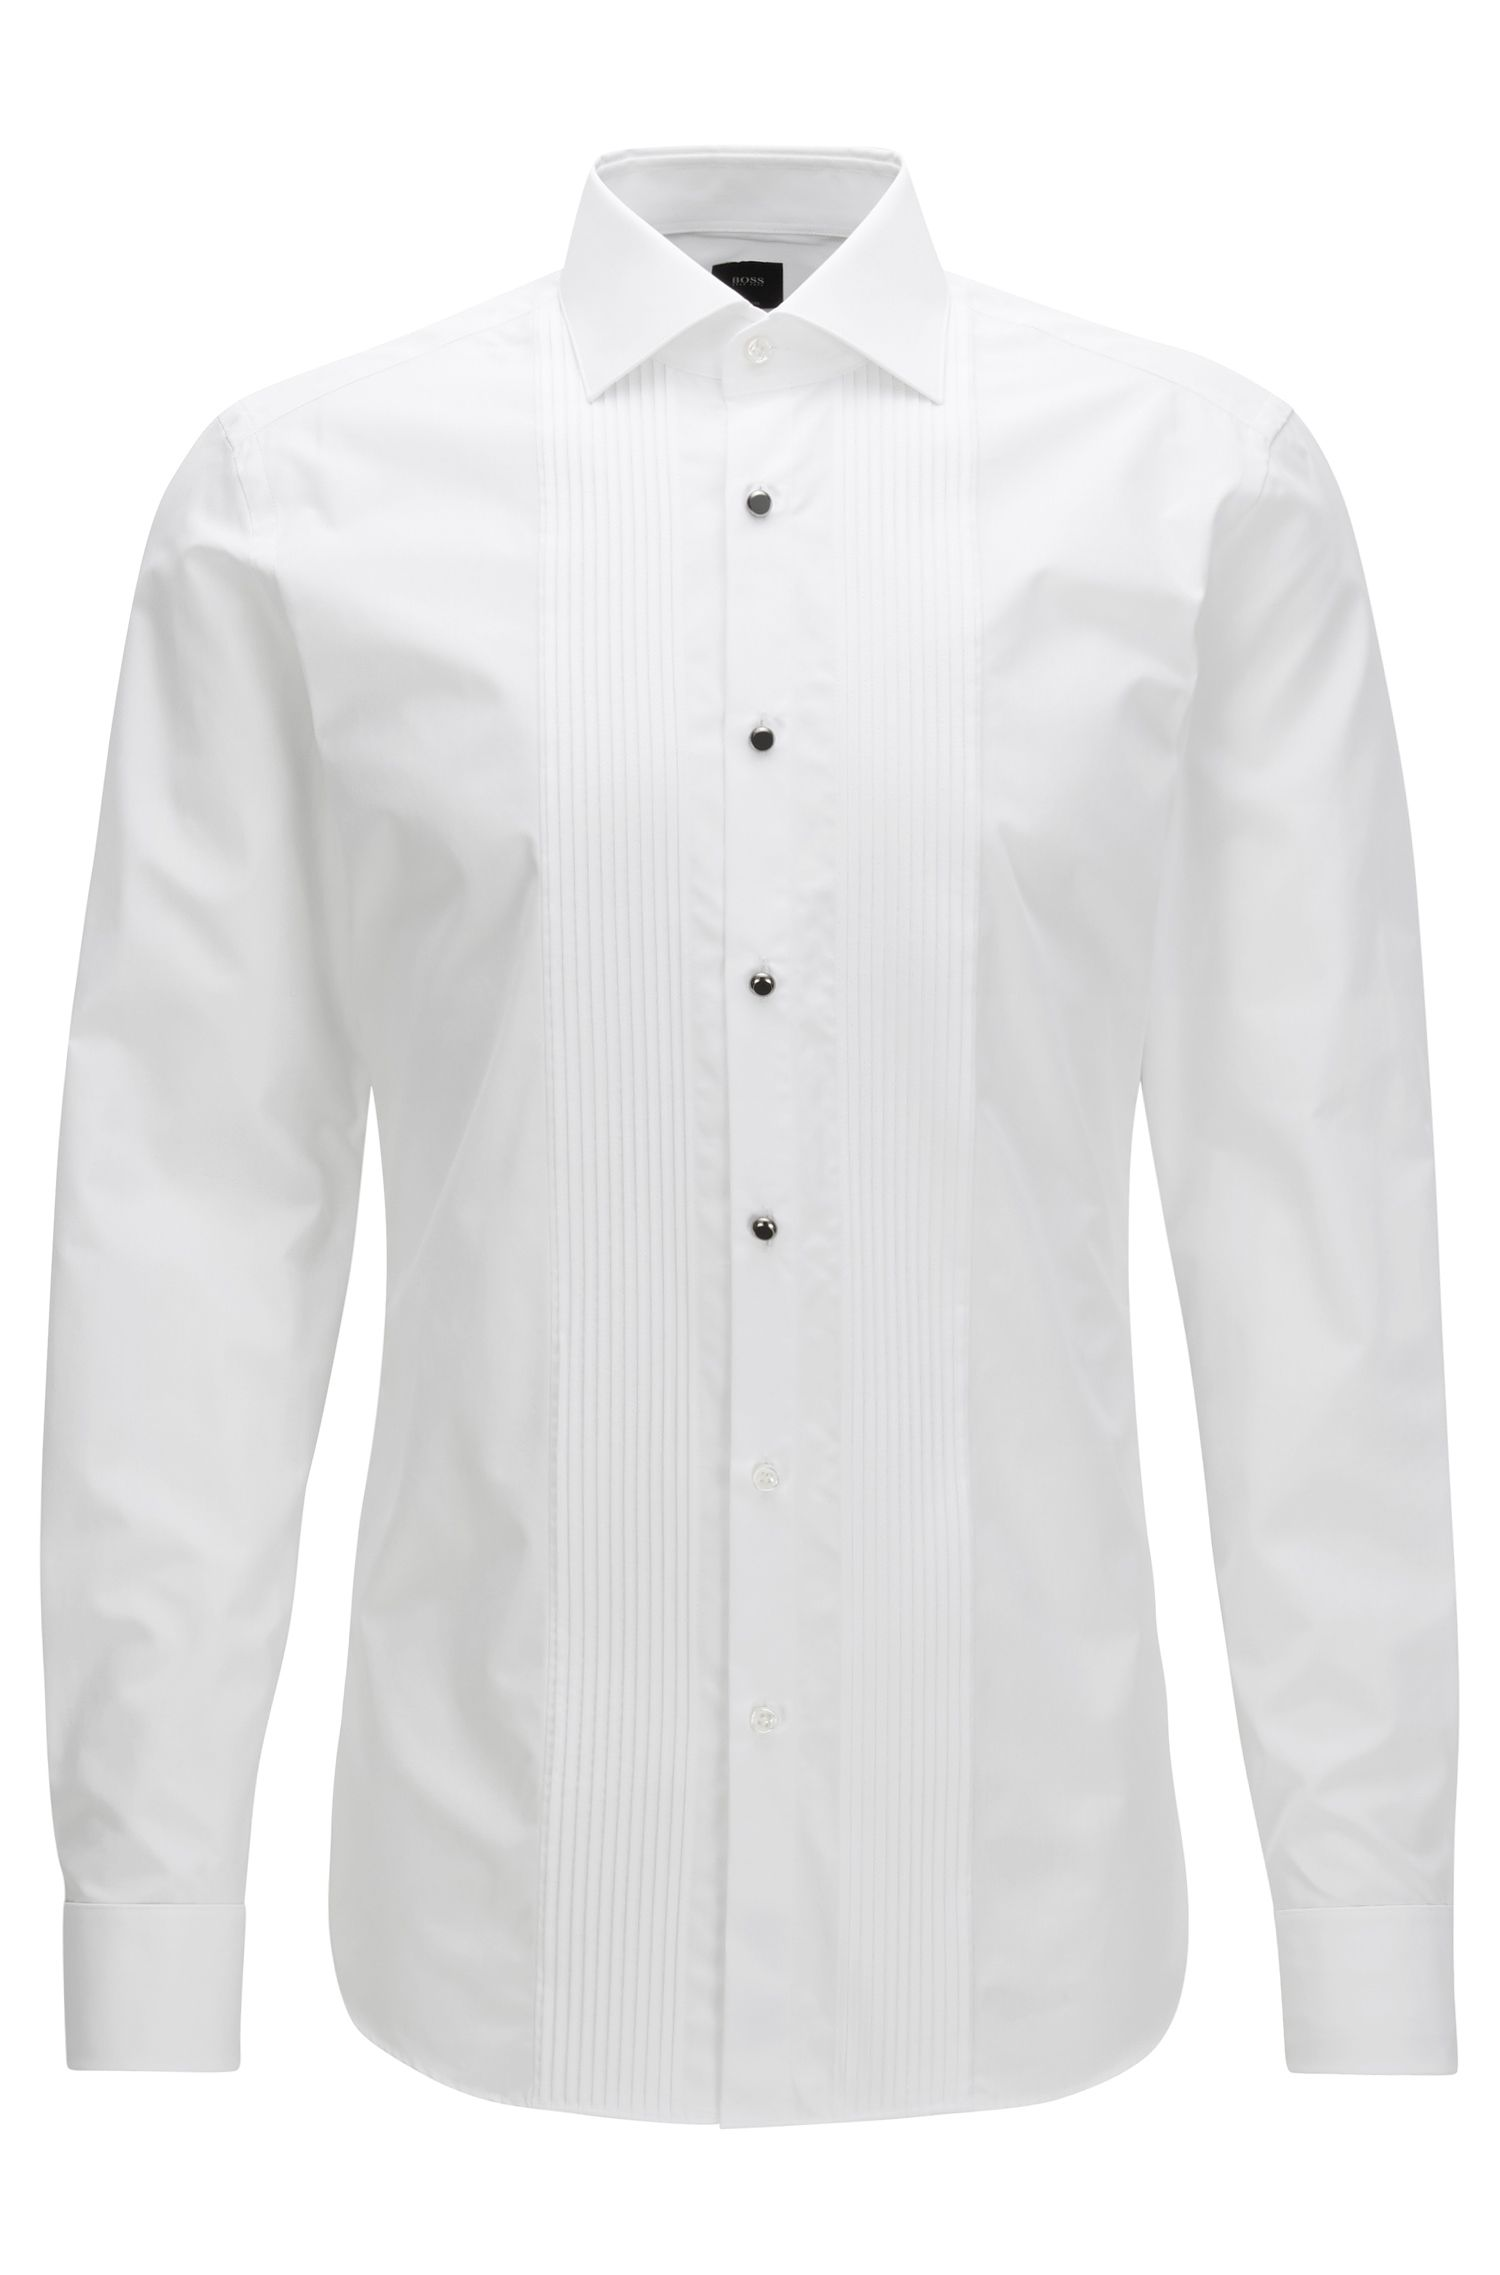 2-Ply Egyptian Cotton Dress Shirt, Slim Fit | T-Cameron